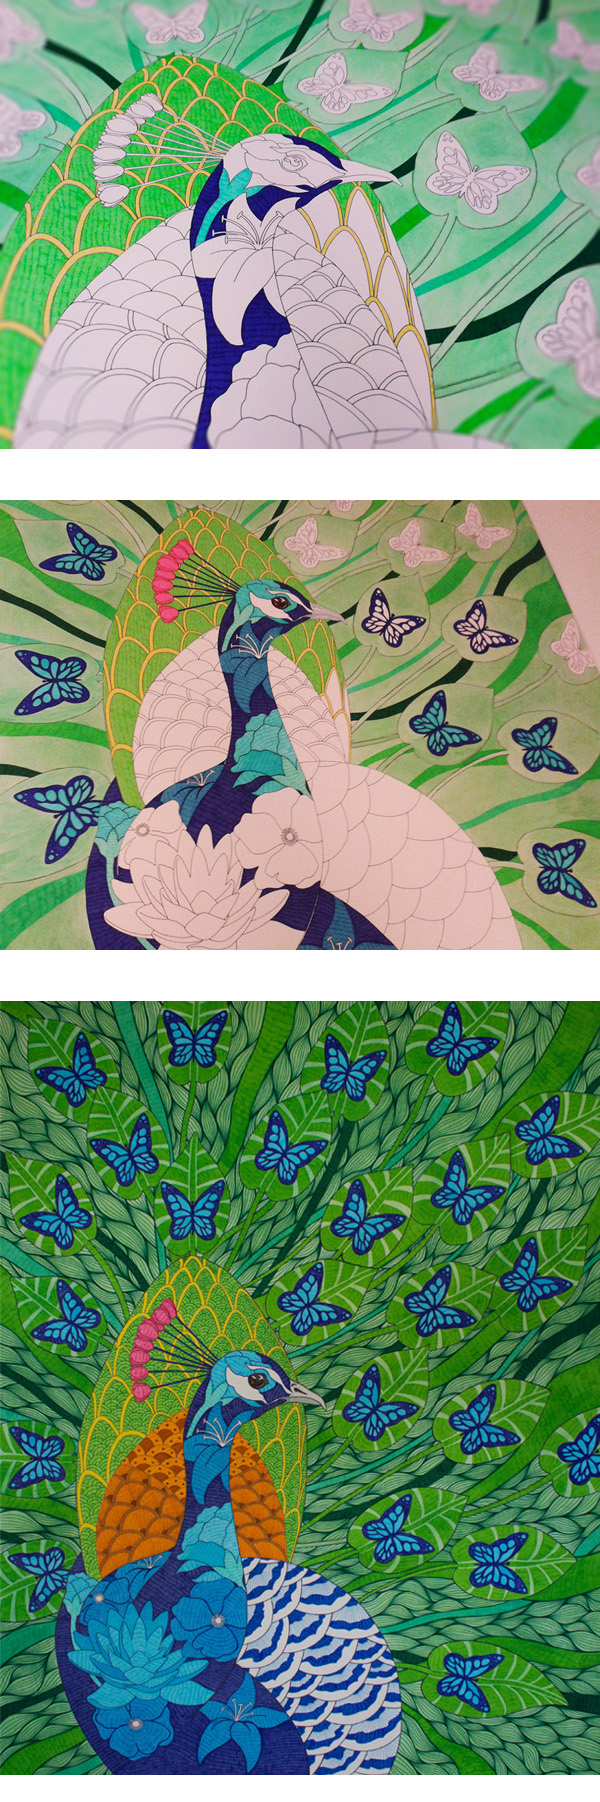 Peacock and Butterflies WIP shots. Hand drawn pen and ink over watercolour on A0 board.